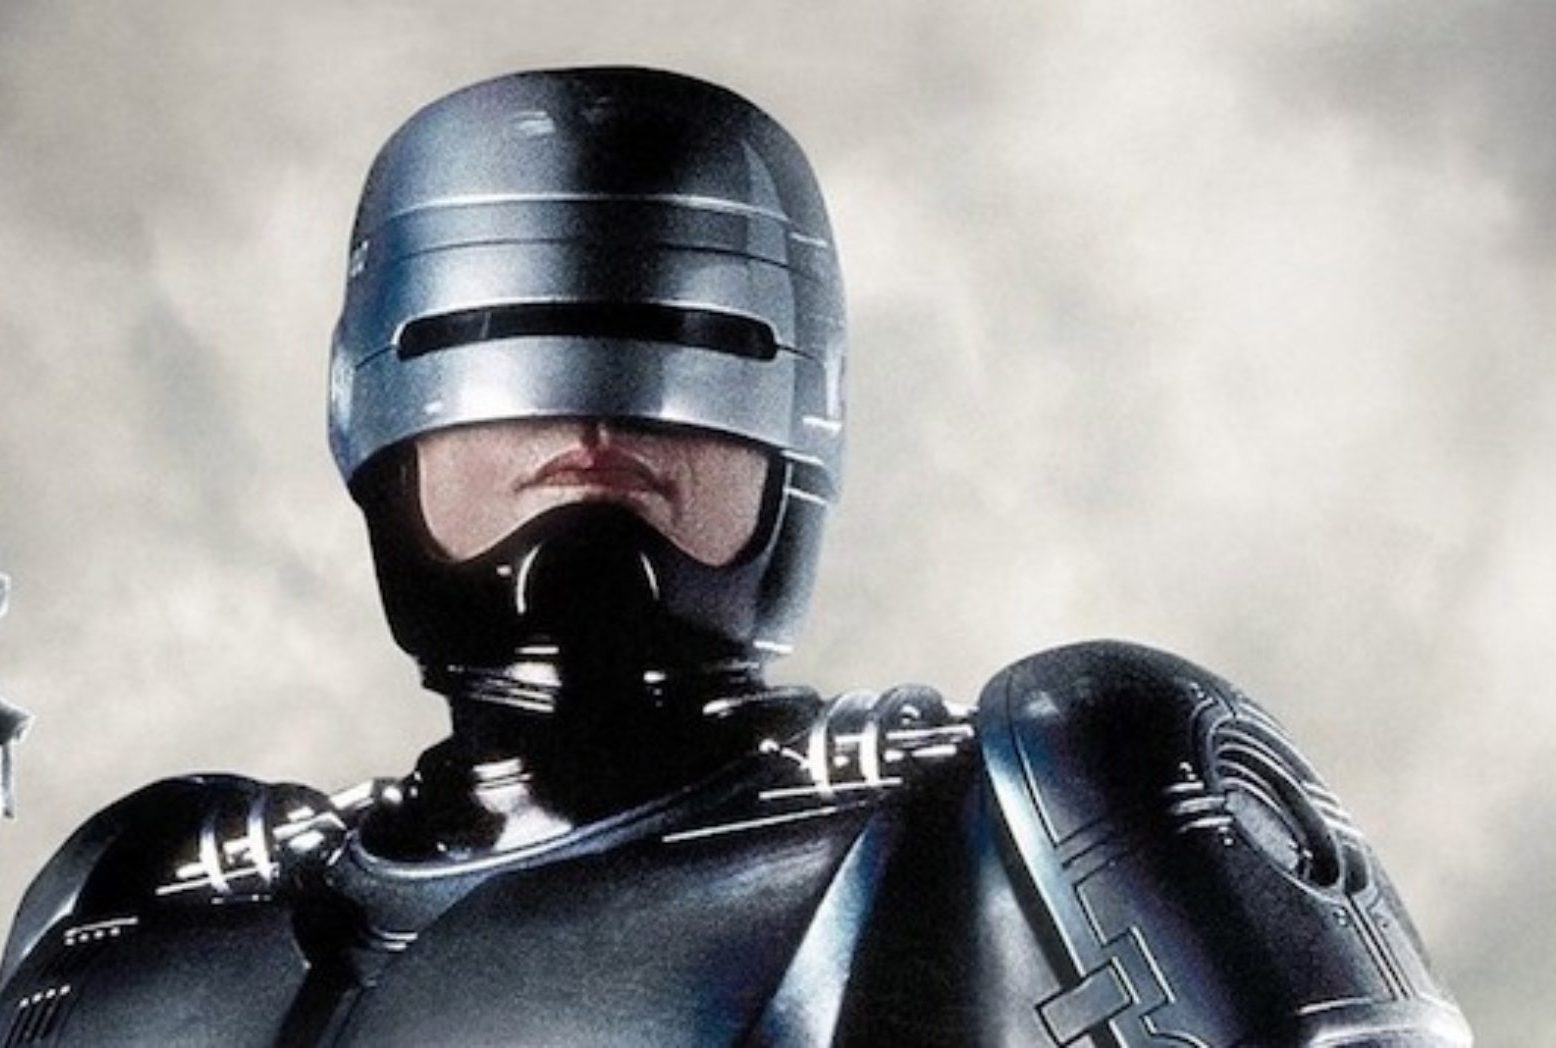 RoboCop Poster Main 1864x1048 1 e1607943976971 20 Famous Films That Had Almost Identical 'Twins'